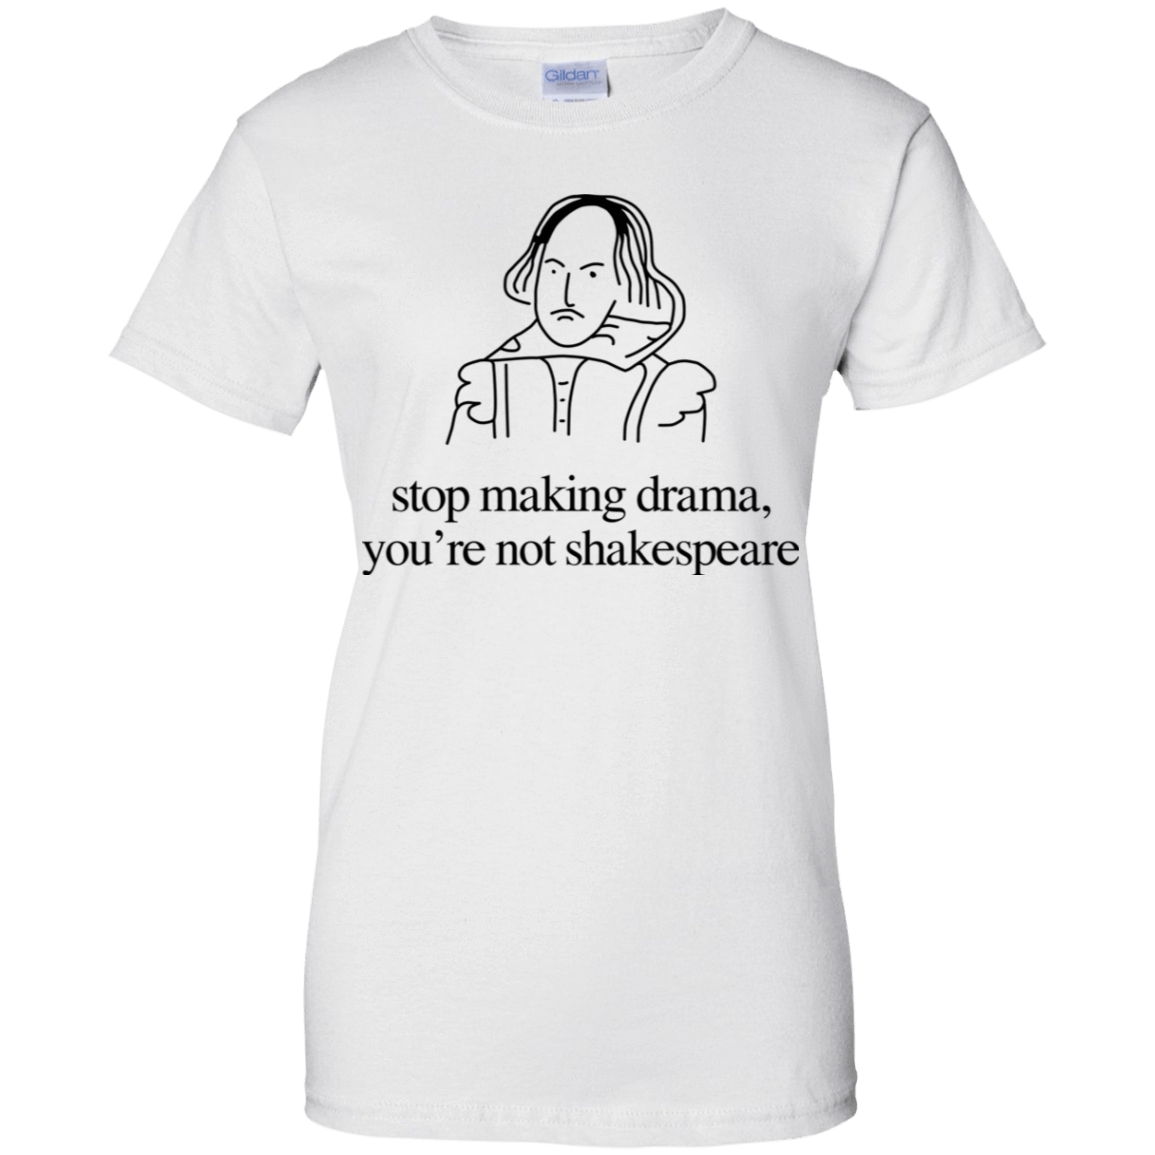 Stop Making Drama You're Not Shakespeare 939-9247-72088089-44814 - Tee Ript